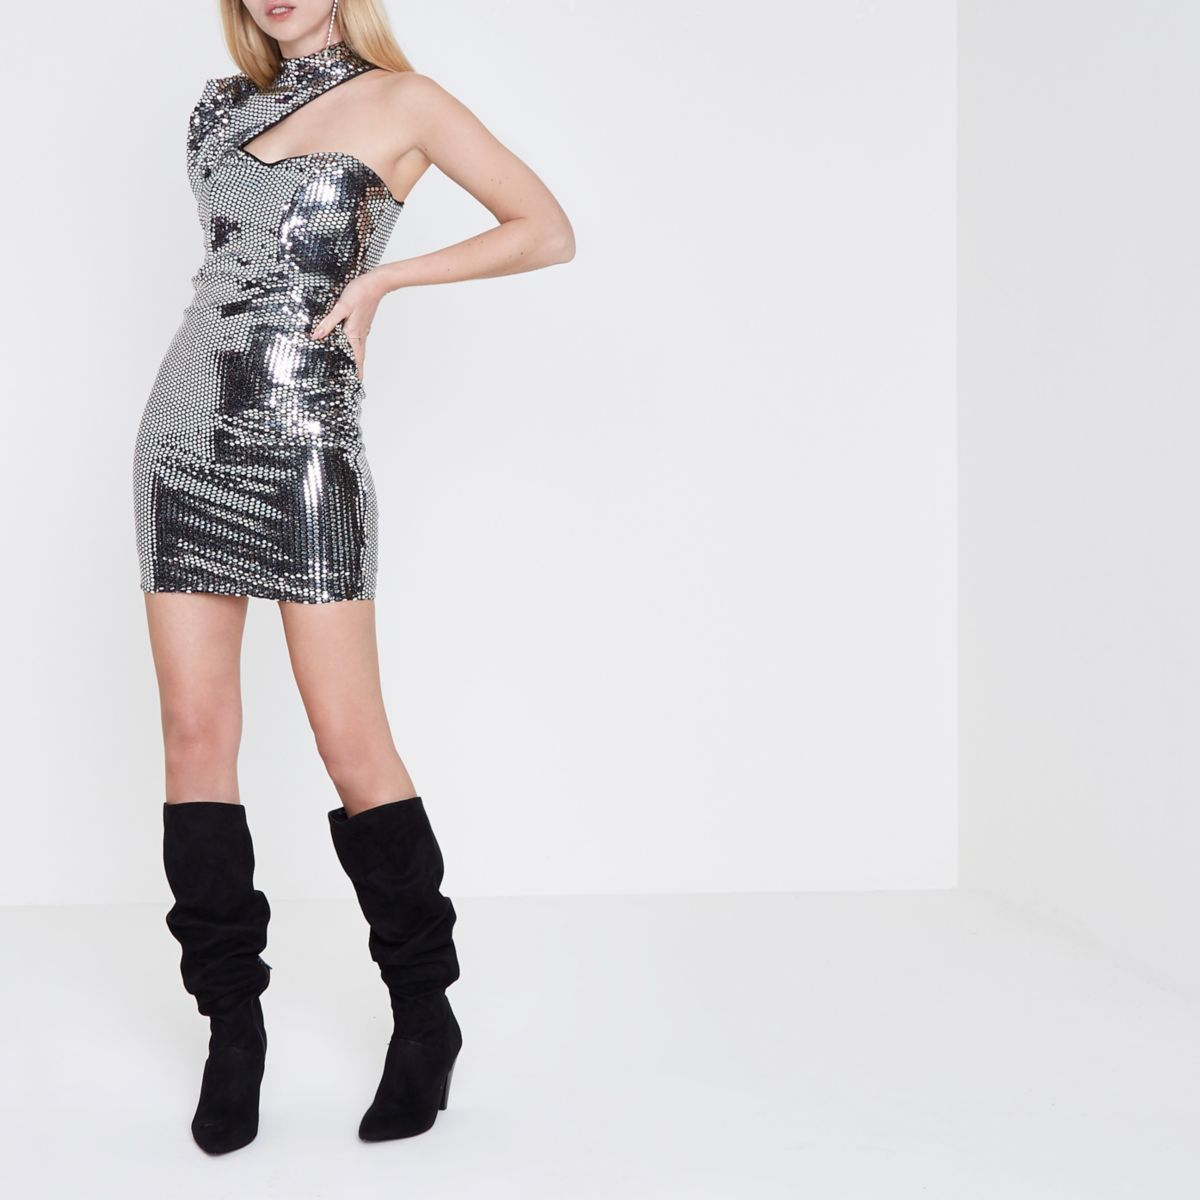 【海外限定】River Island ドレス☆Silver mirror sequin one sl